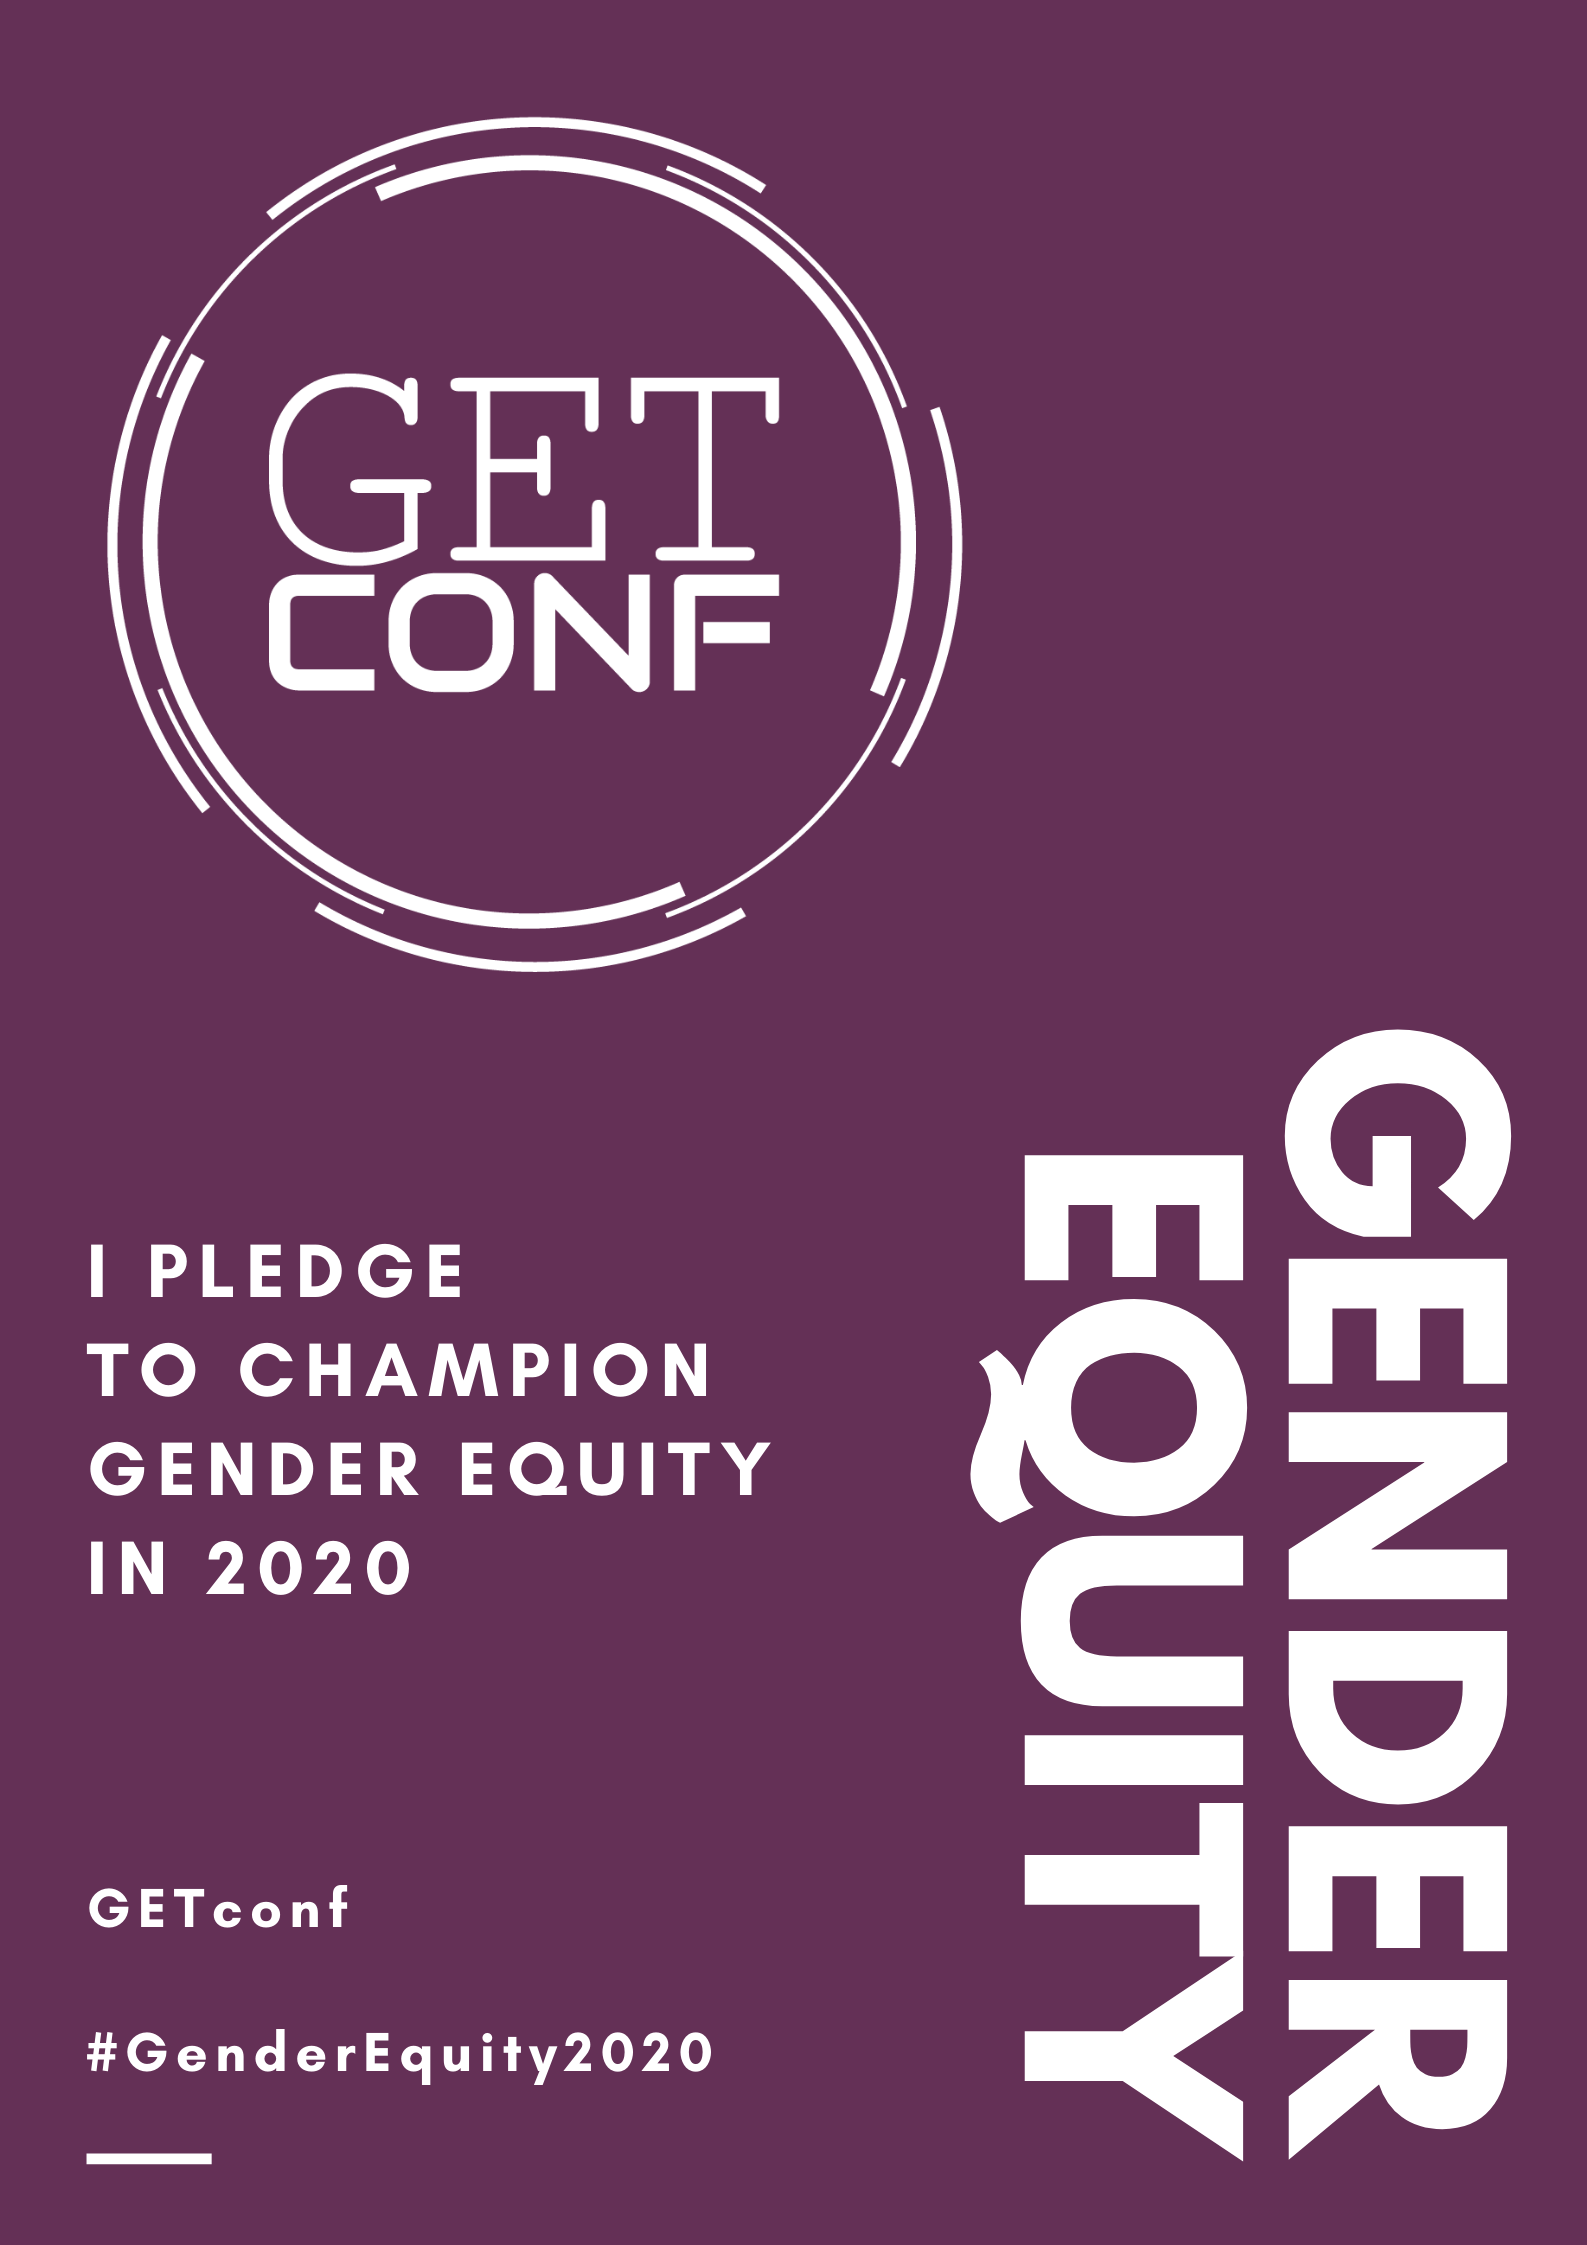 I pledge to champion gender equity in 2020